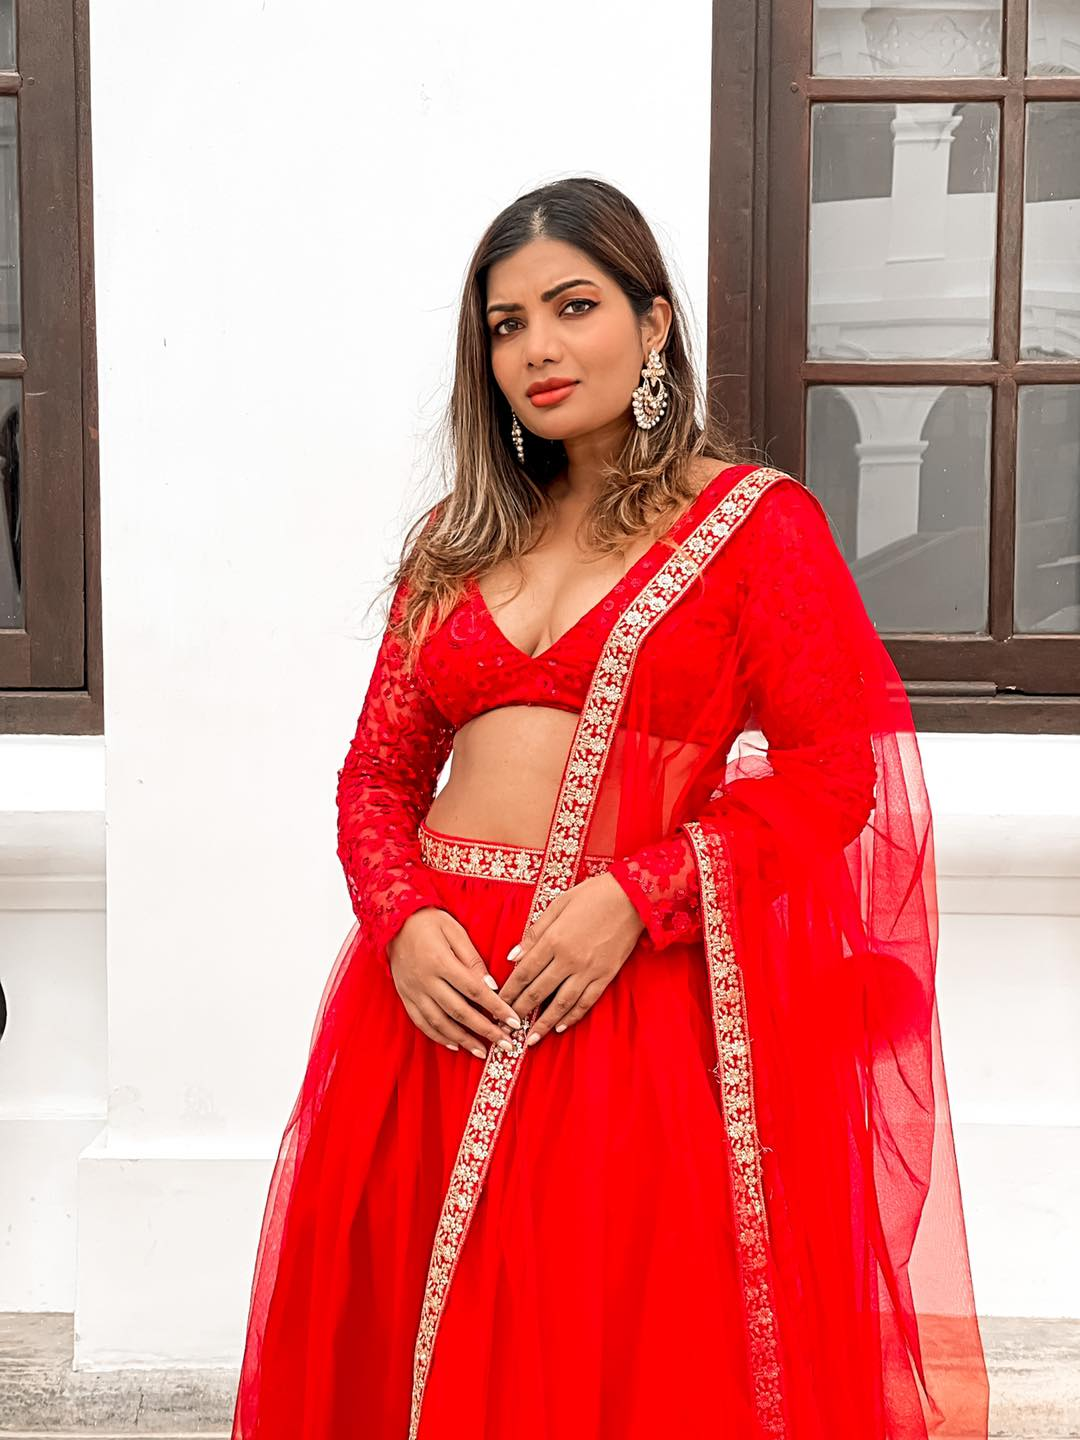 STARLET is  dream lehenga! It's princessy feminine and glamorous! It's a crimson red full tulle skirt double lined for a voluminous look adorned with a sequin embroidered waist belt. The blouse is fully thread work embroidered with red sequin embellishments in a floral design in red designed in a V-neck long sleeves style.  The dupatta is a soft net one with the matching gold sequin embroidered border in a floral design.  2021-07-16